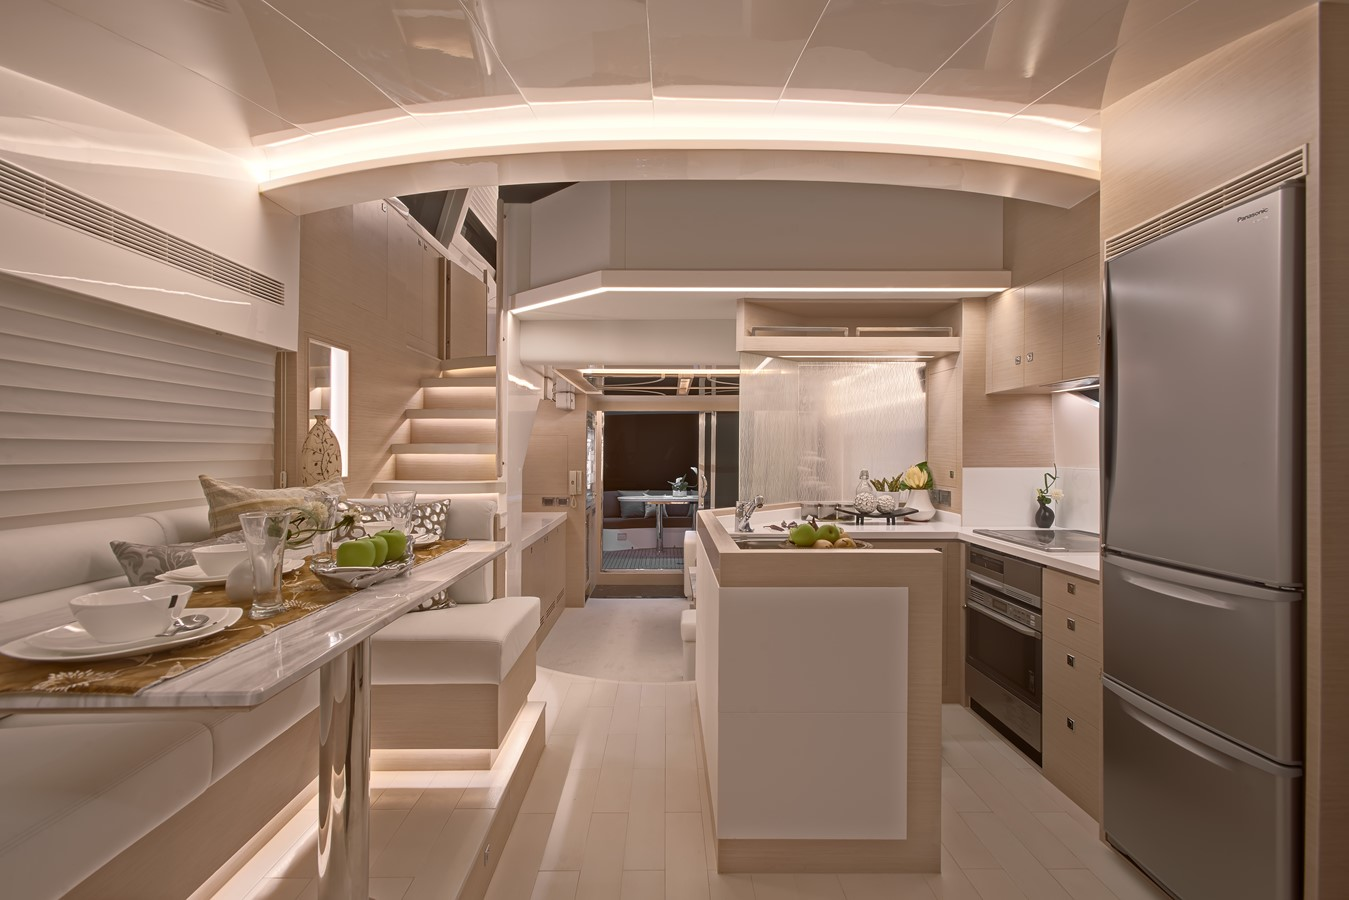 Galley - Dinette  2021 HORIZON E62 Motor Yacht 2205340